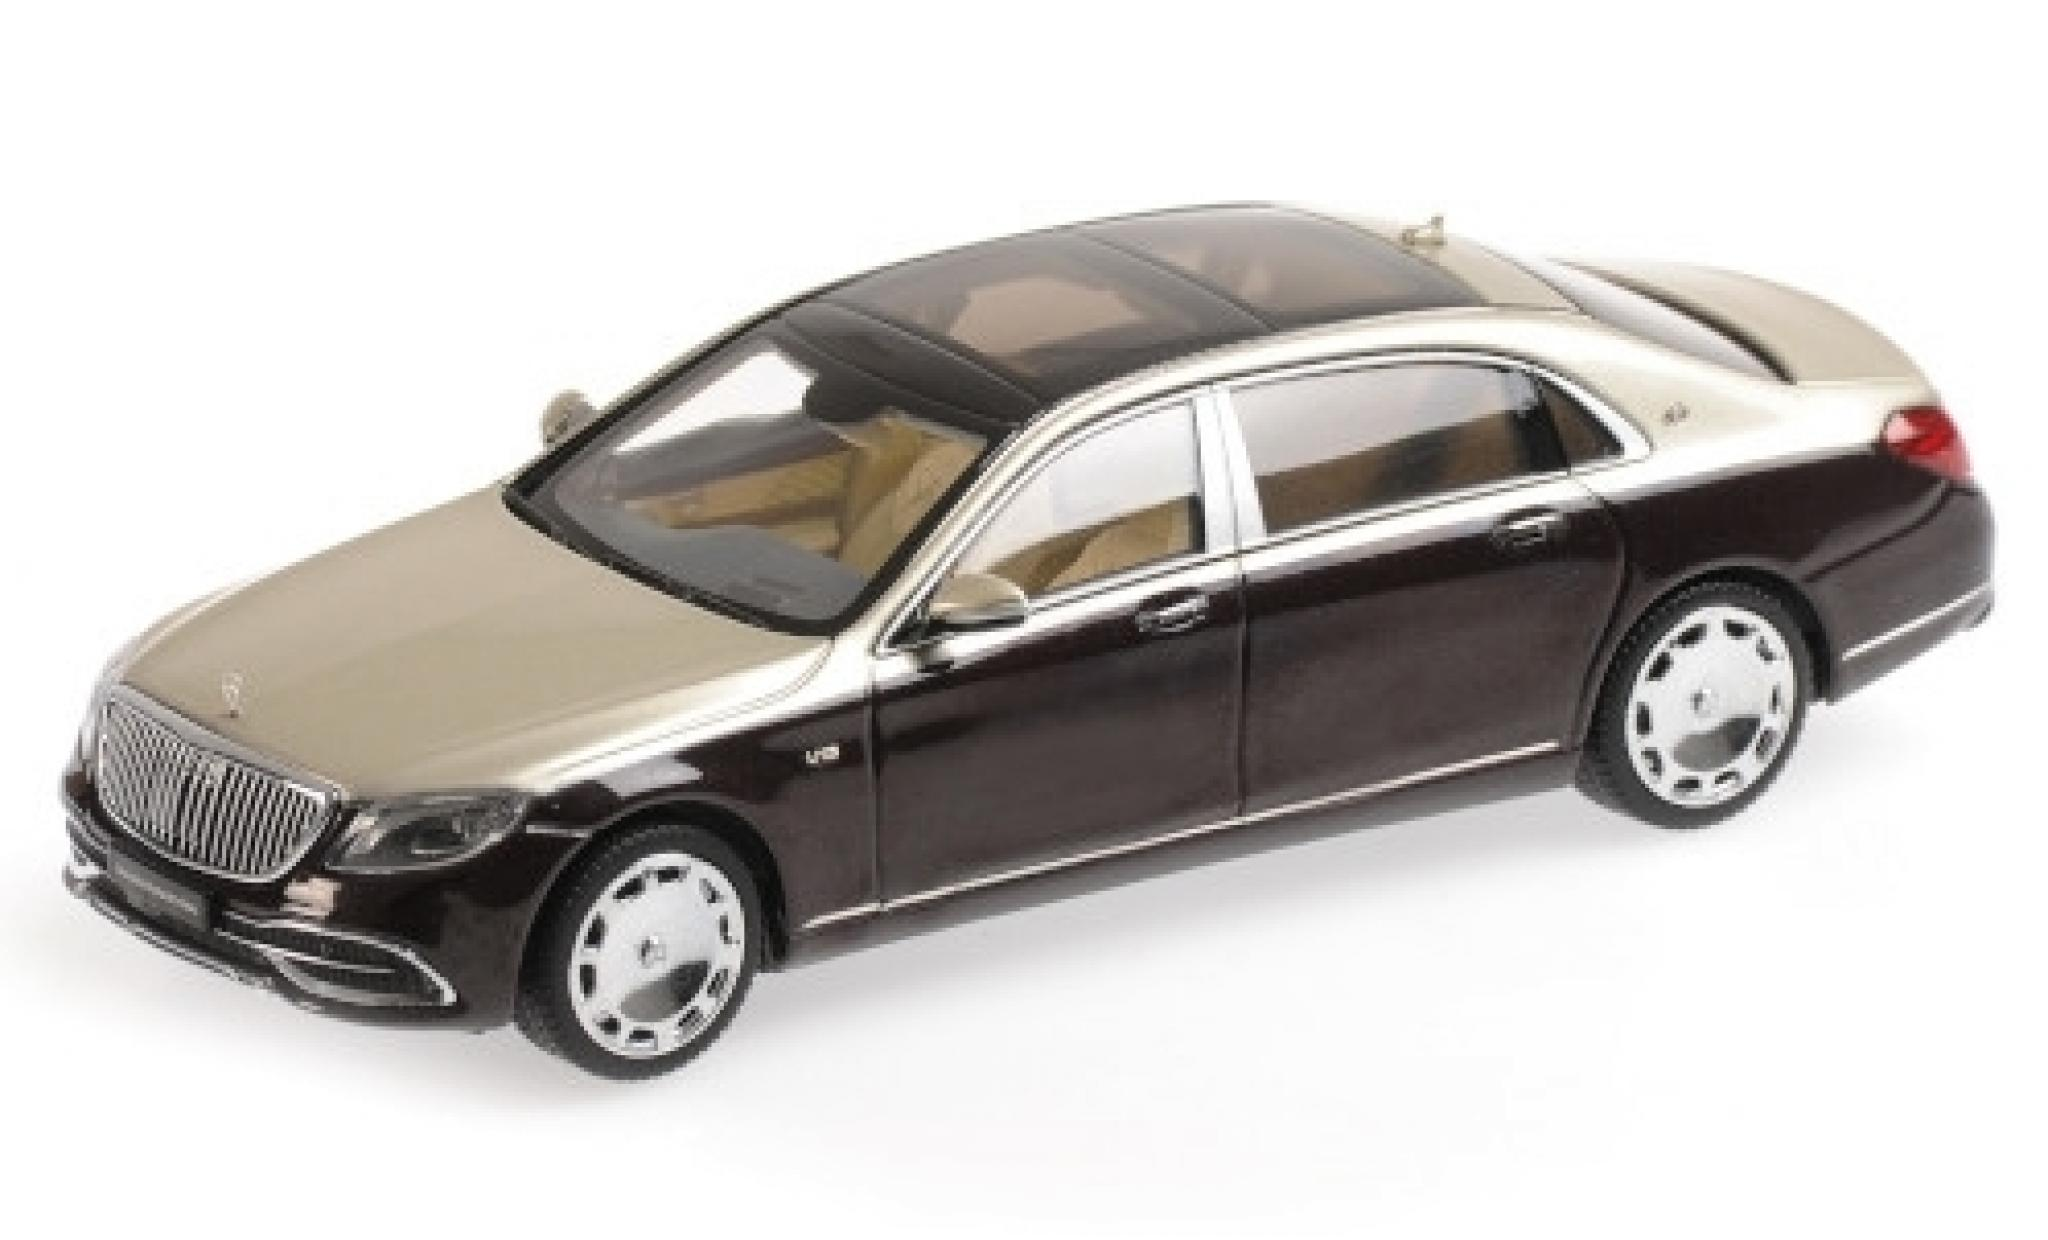 Mercedes Classe S 1/43 Almost Real Maybach S650 (V222) metallise rouge/metallise beige 2019